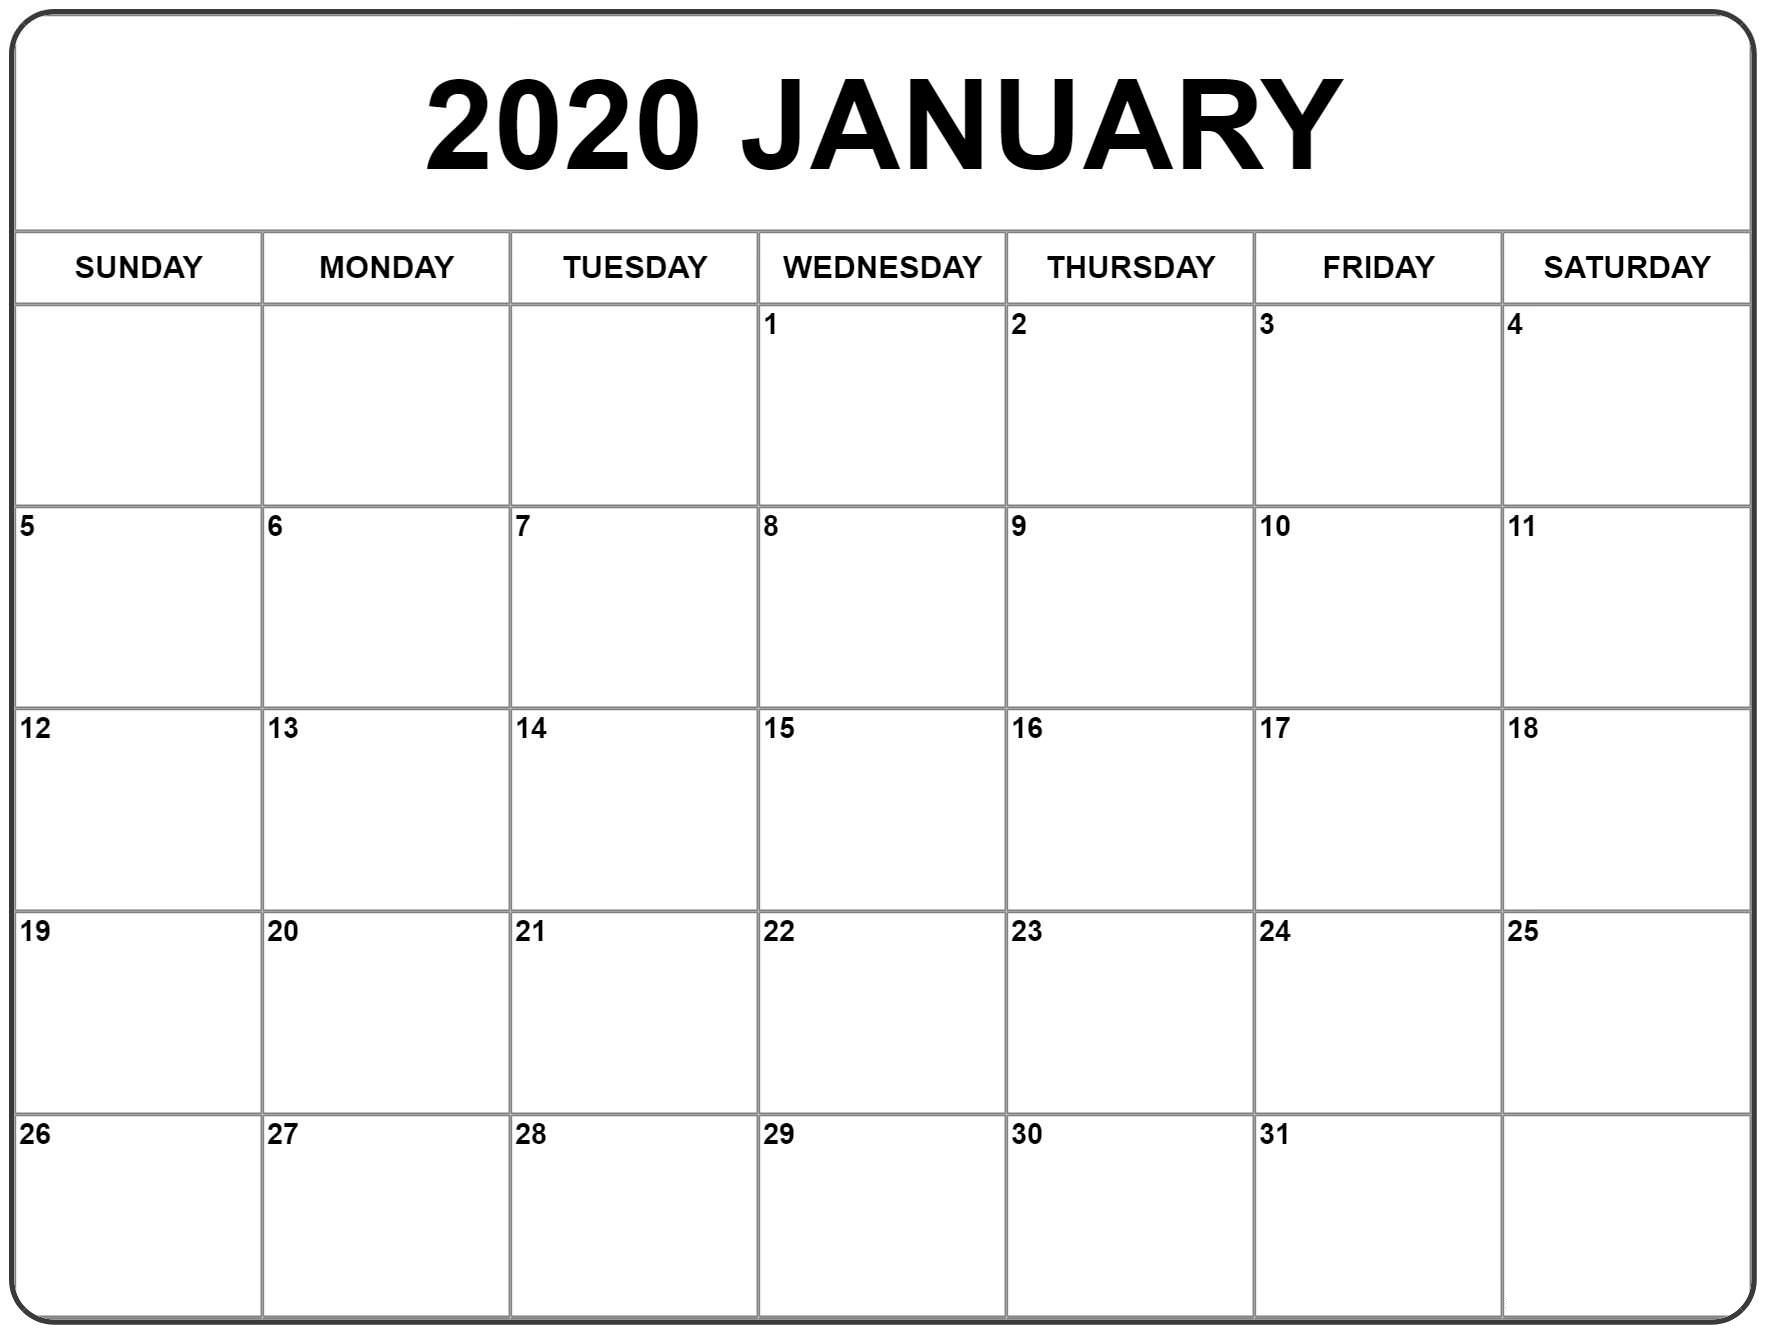 Printable January Calendar 2020 Word - 2019 Calendars For